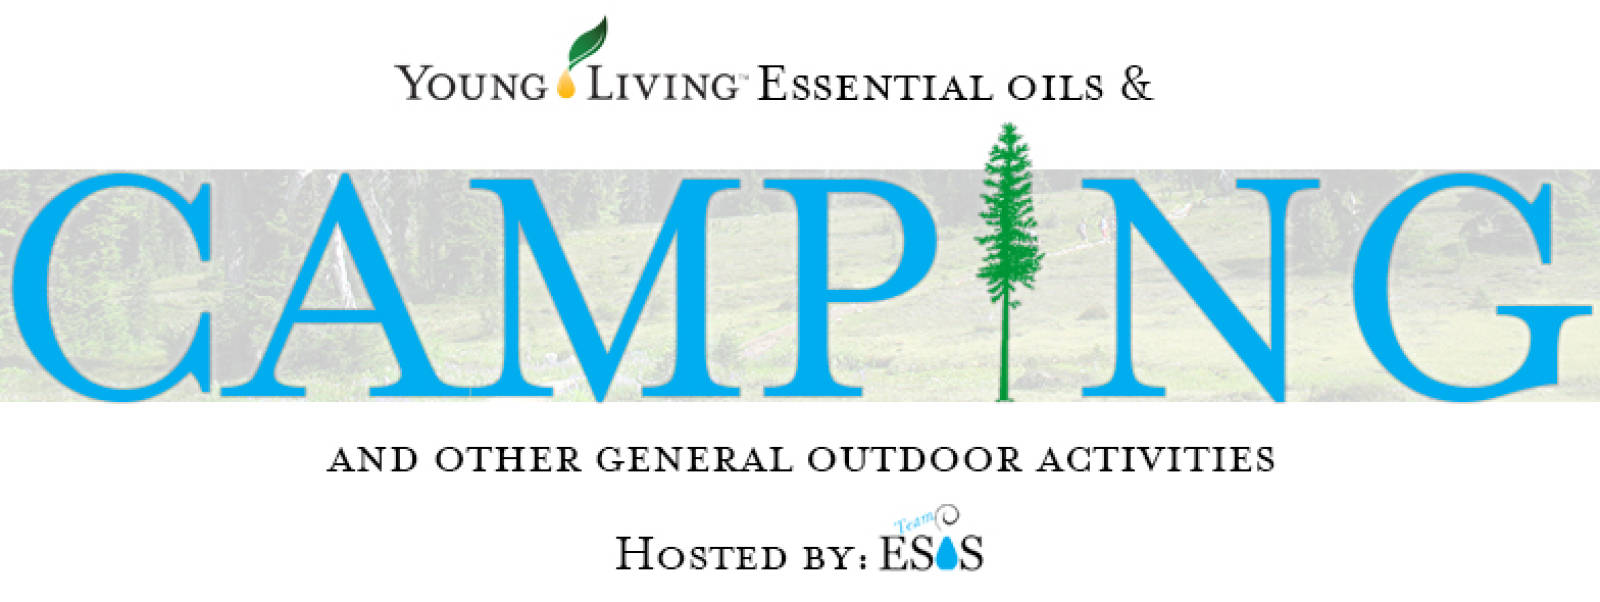 Young Living Essential Oils & Camping